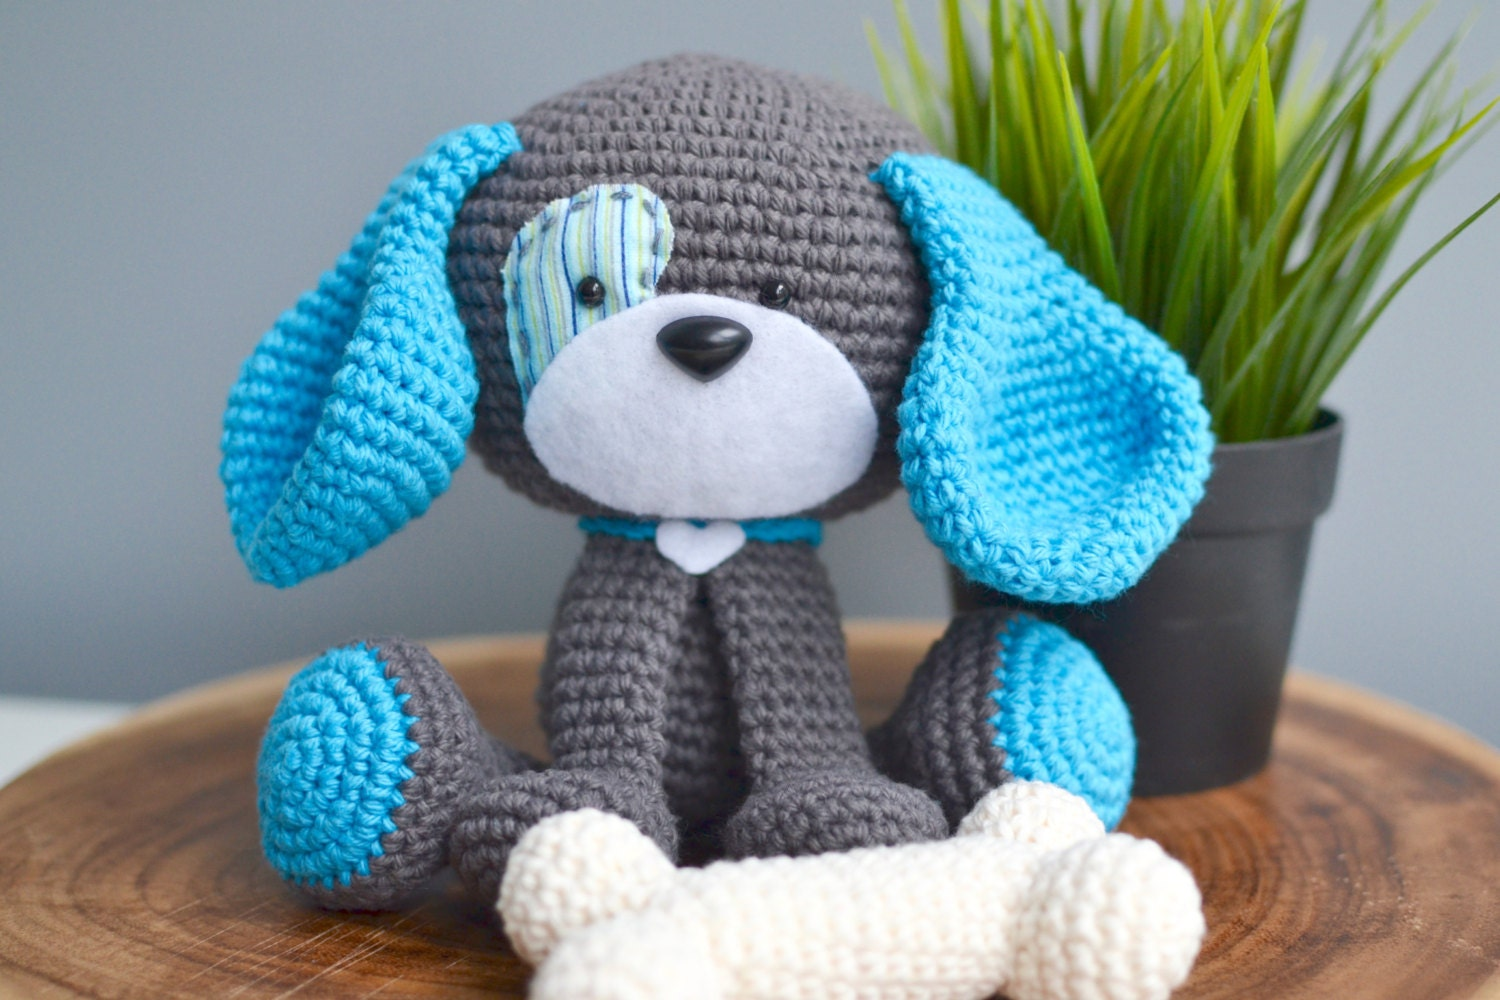 Amigurumi Dog Knitting Patterns : Cute Dog Crochet Pattern. Domino The Dog Amigurumi Crochet